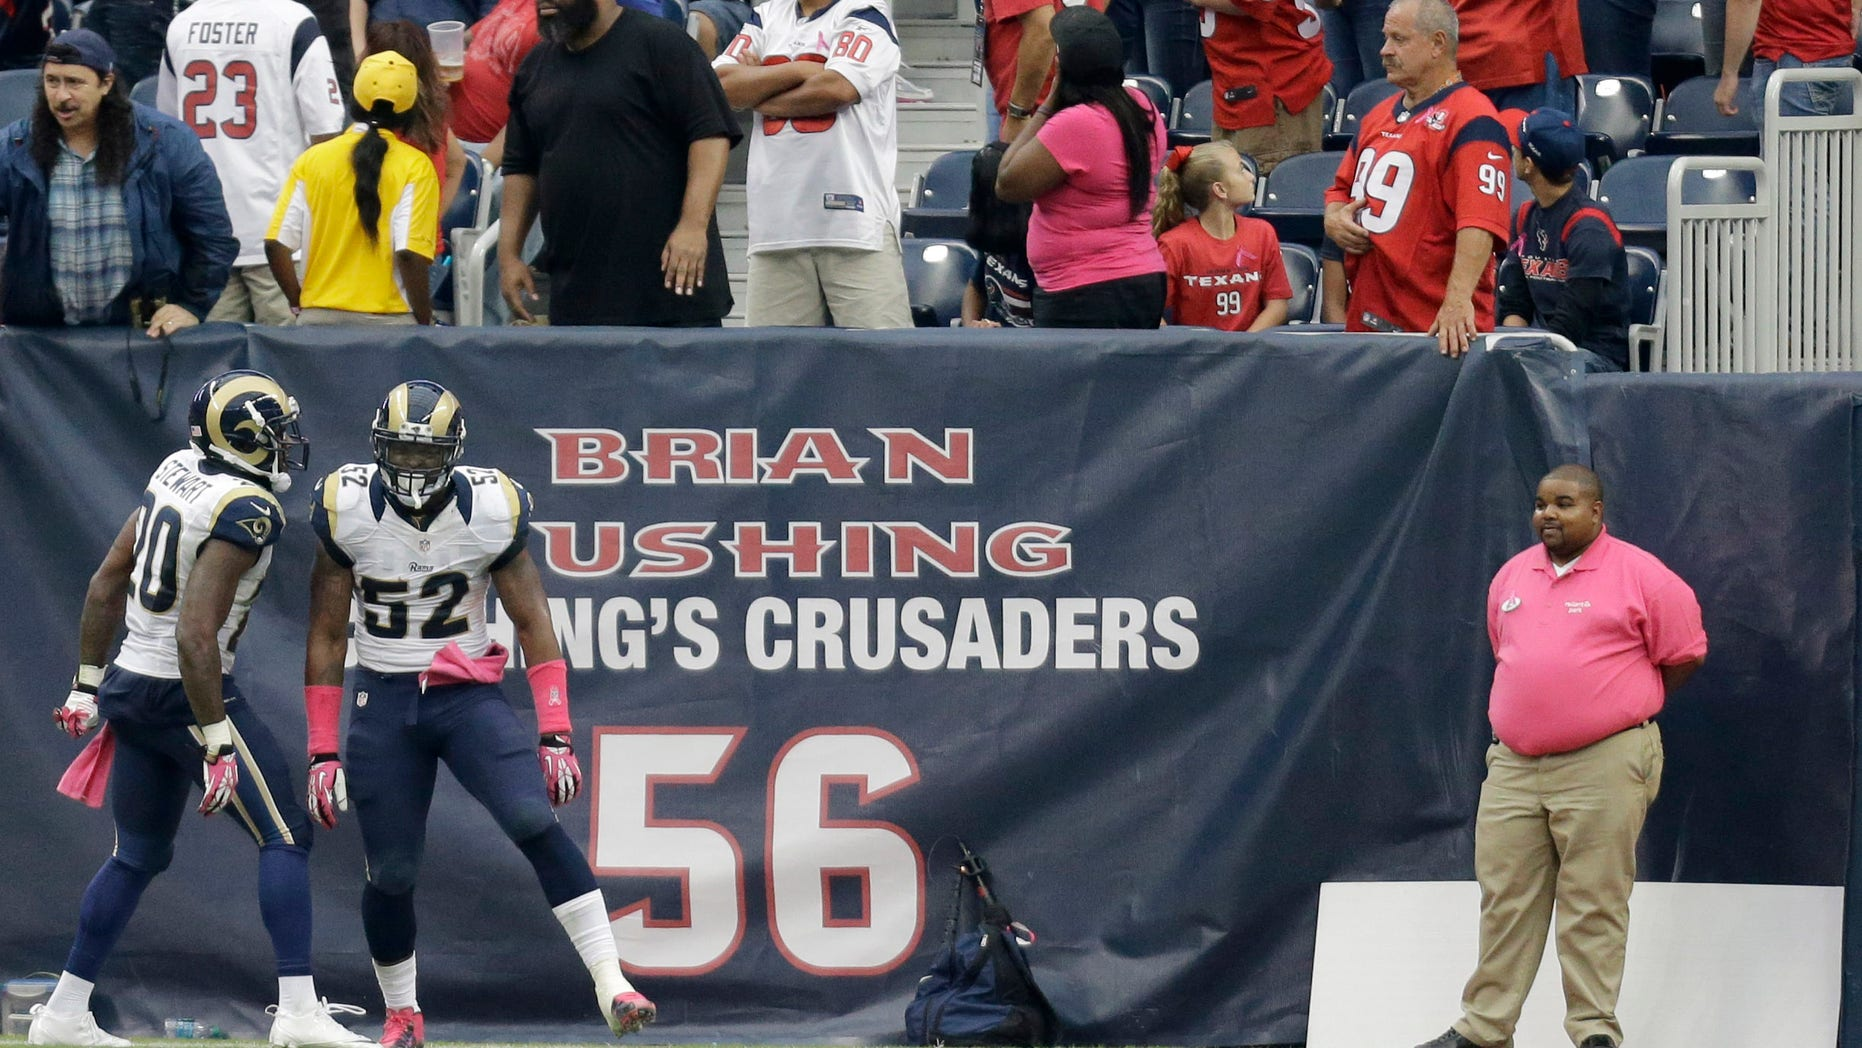 St. Louis Rams outside linebacker Alec Ogletree (52) celebrates his interception for a touchdown against the Houston Texans with Darian Stewart (20) during the third quarter of an NFL football game Sunday, Oct. 13, 2013, in Houston, Texas. (AP Photo/Eric Gay)